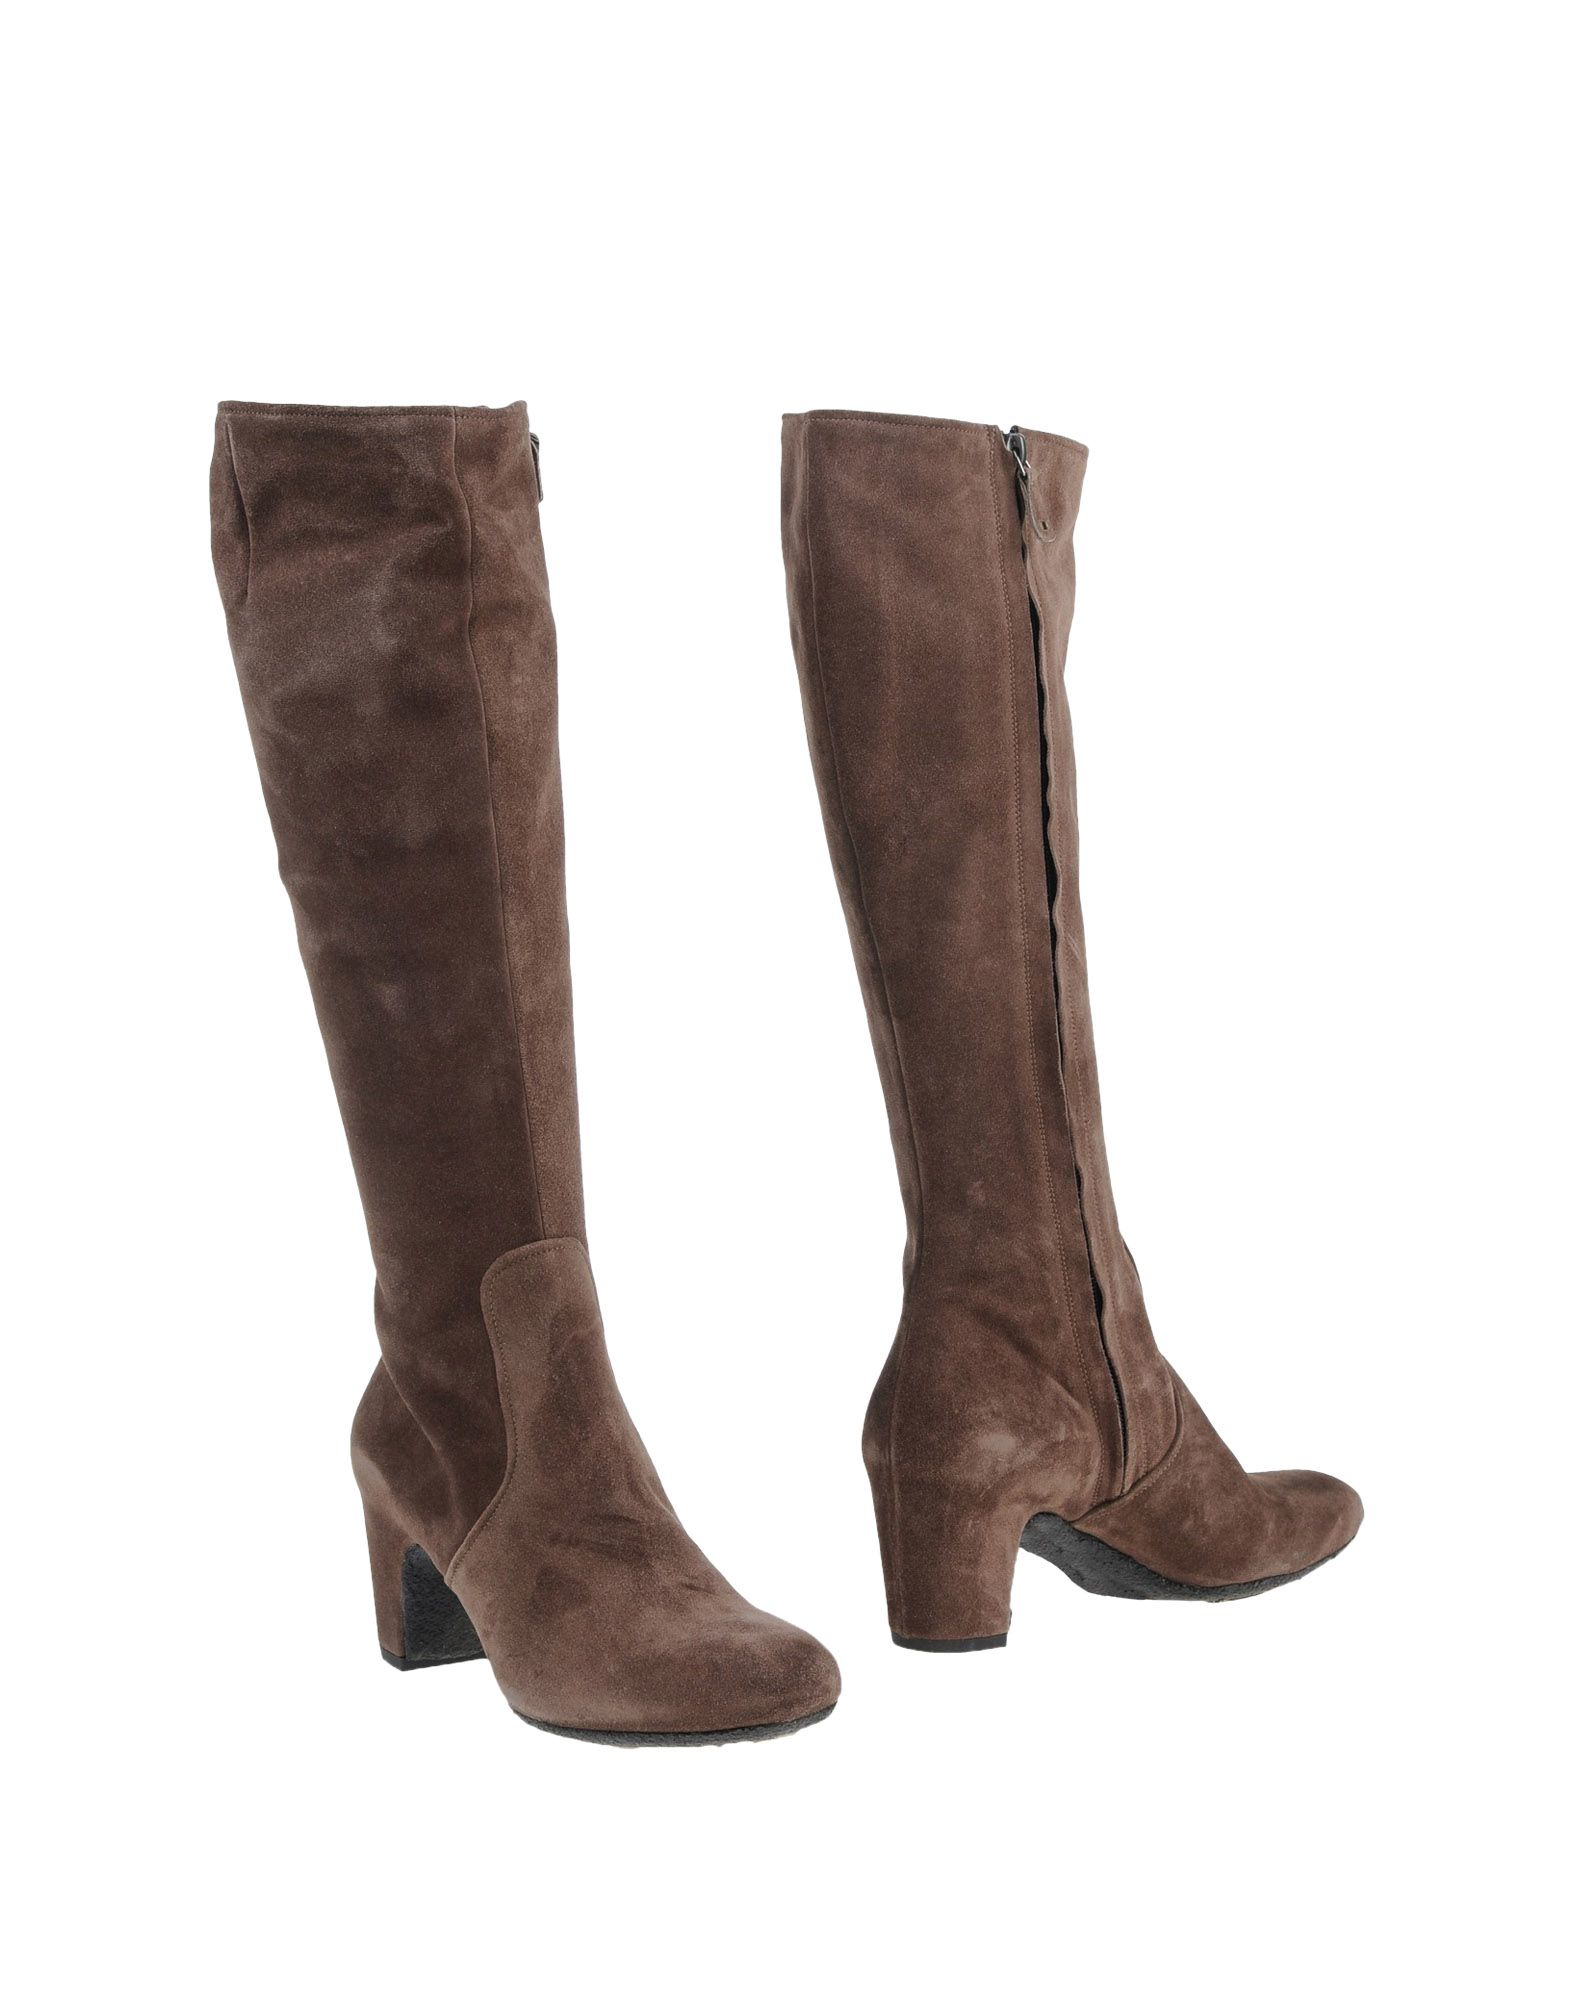 roberto carlo boots in brown light brown